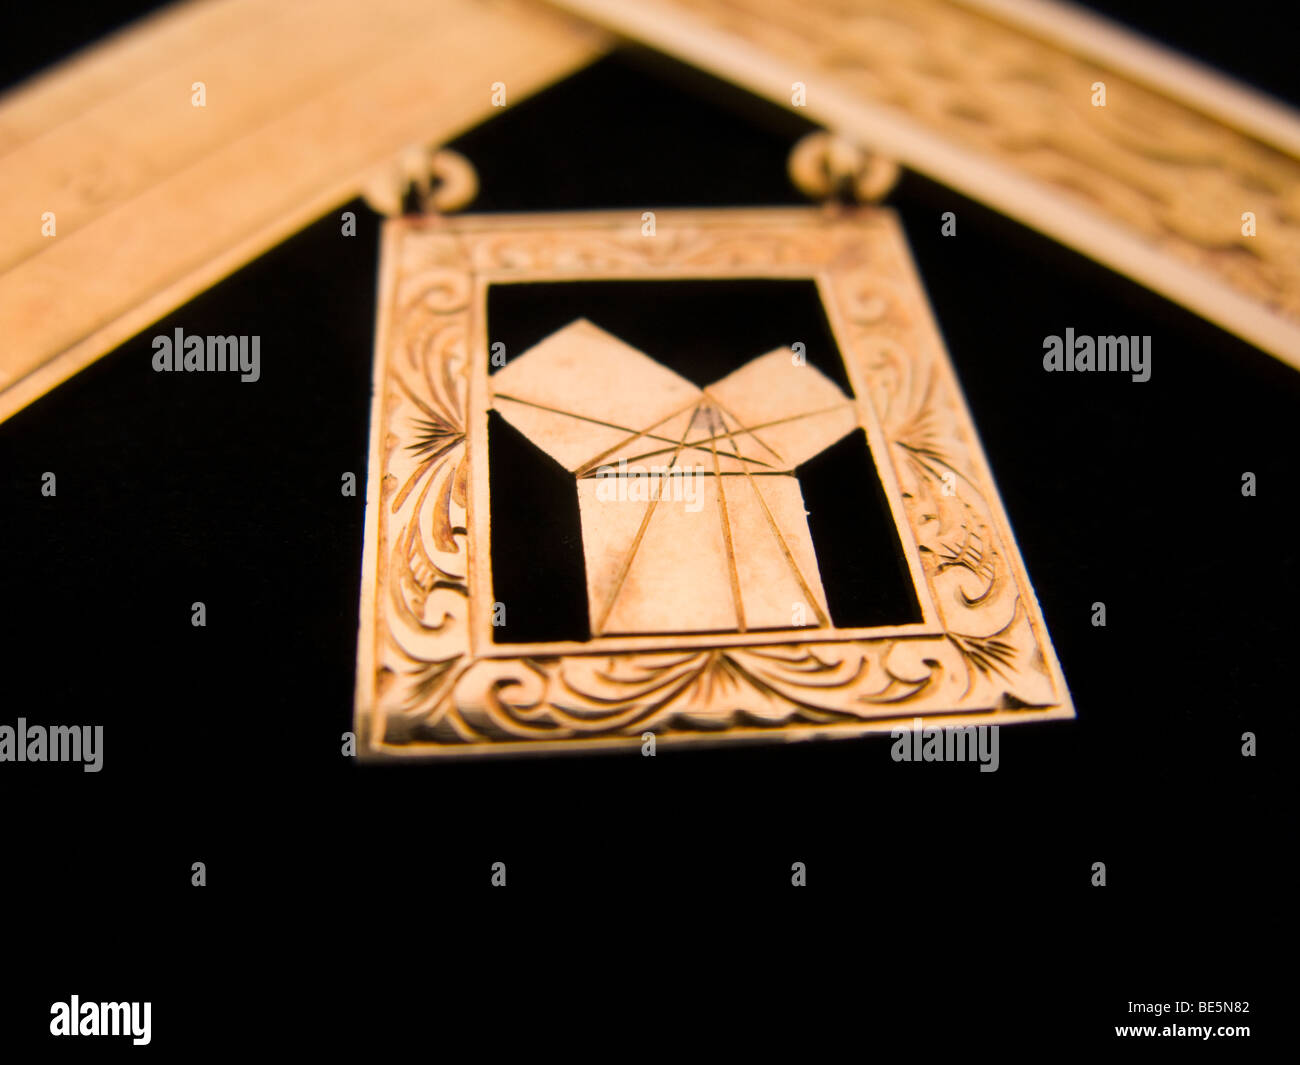 pythagorean stock photos pythagorean stock images  pythagorean theorem symbolised a diagram engraved on a masonic past master medal jewel in